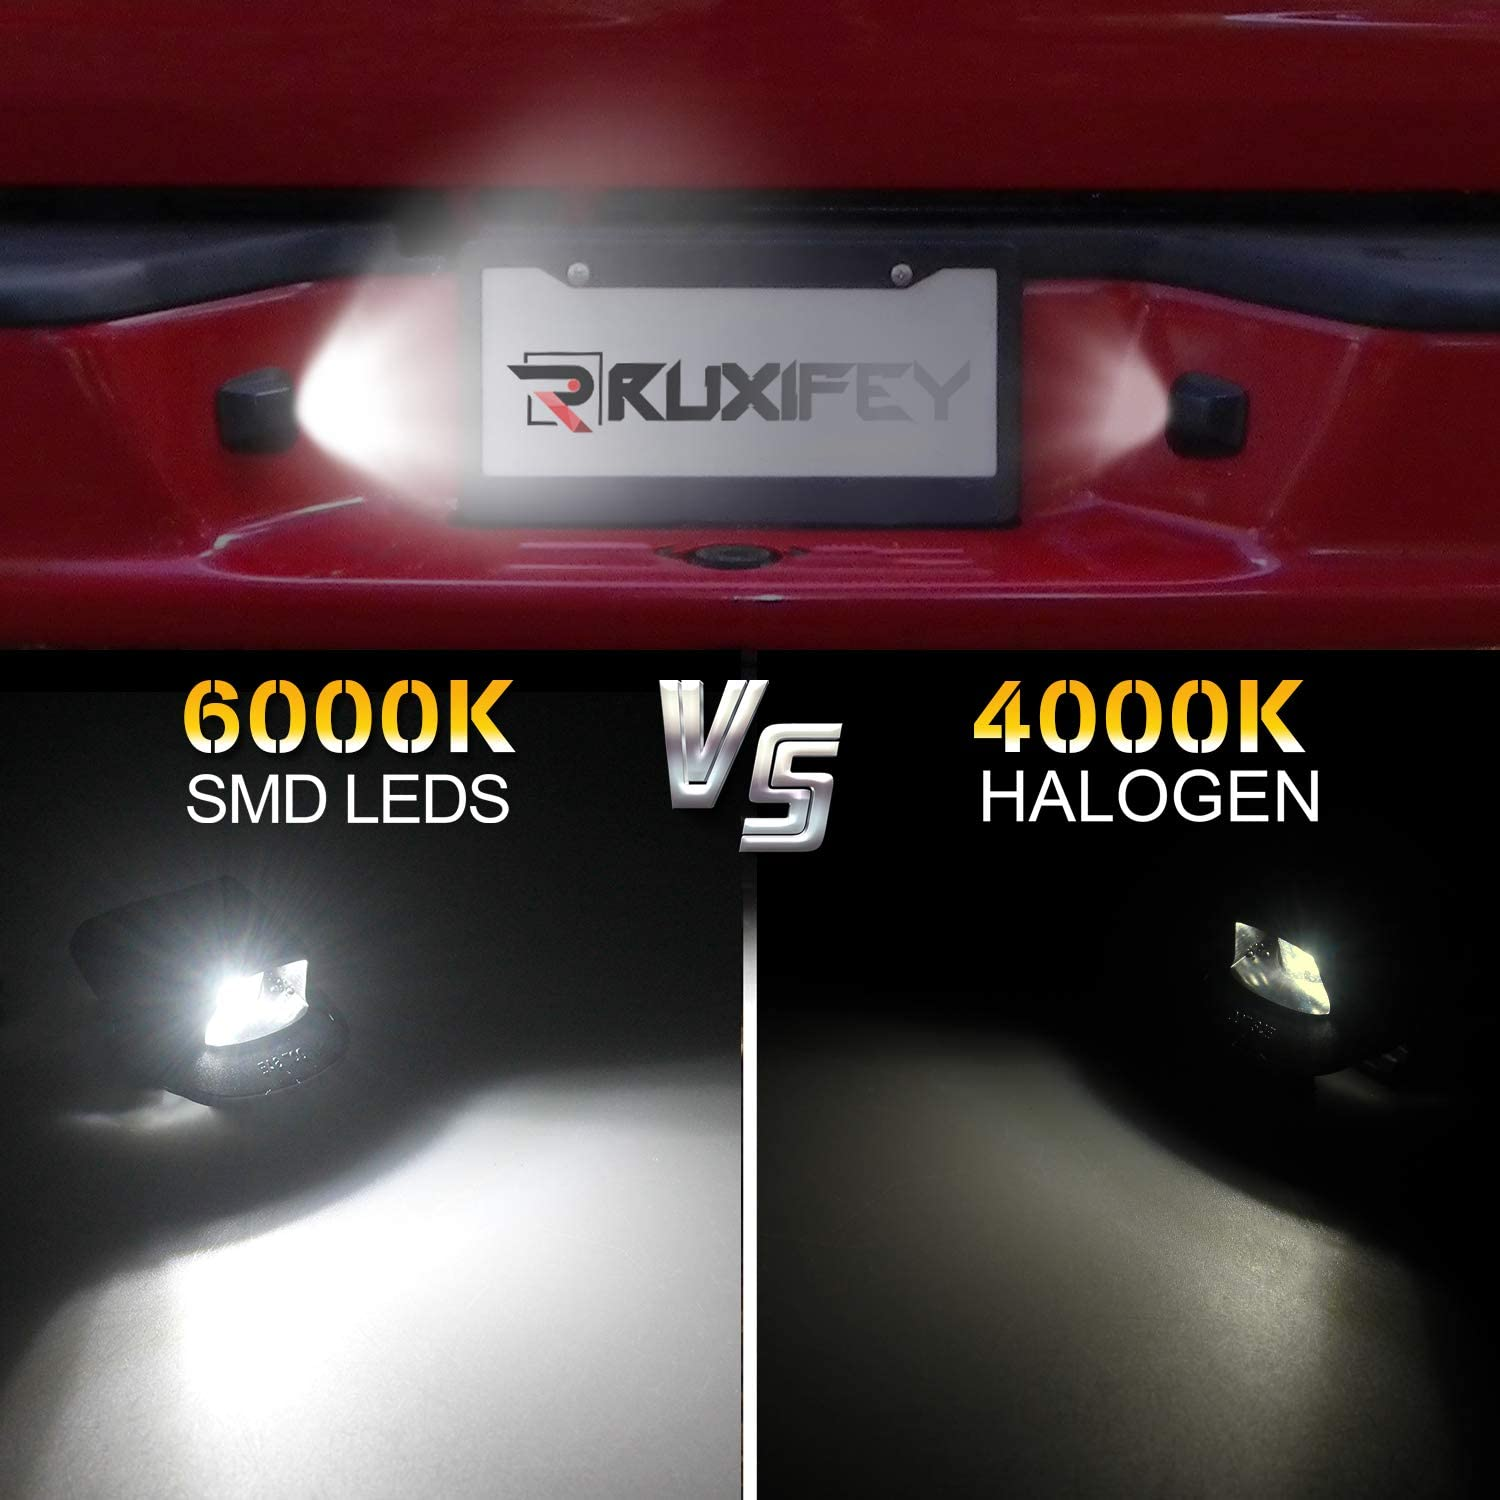 RUXIFEY LED License Plate Light Replacement Compatible with Dodge Dakota 1997-2011 Pickup Truck Pack of 2 6000K White